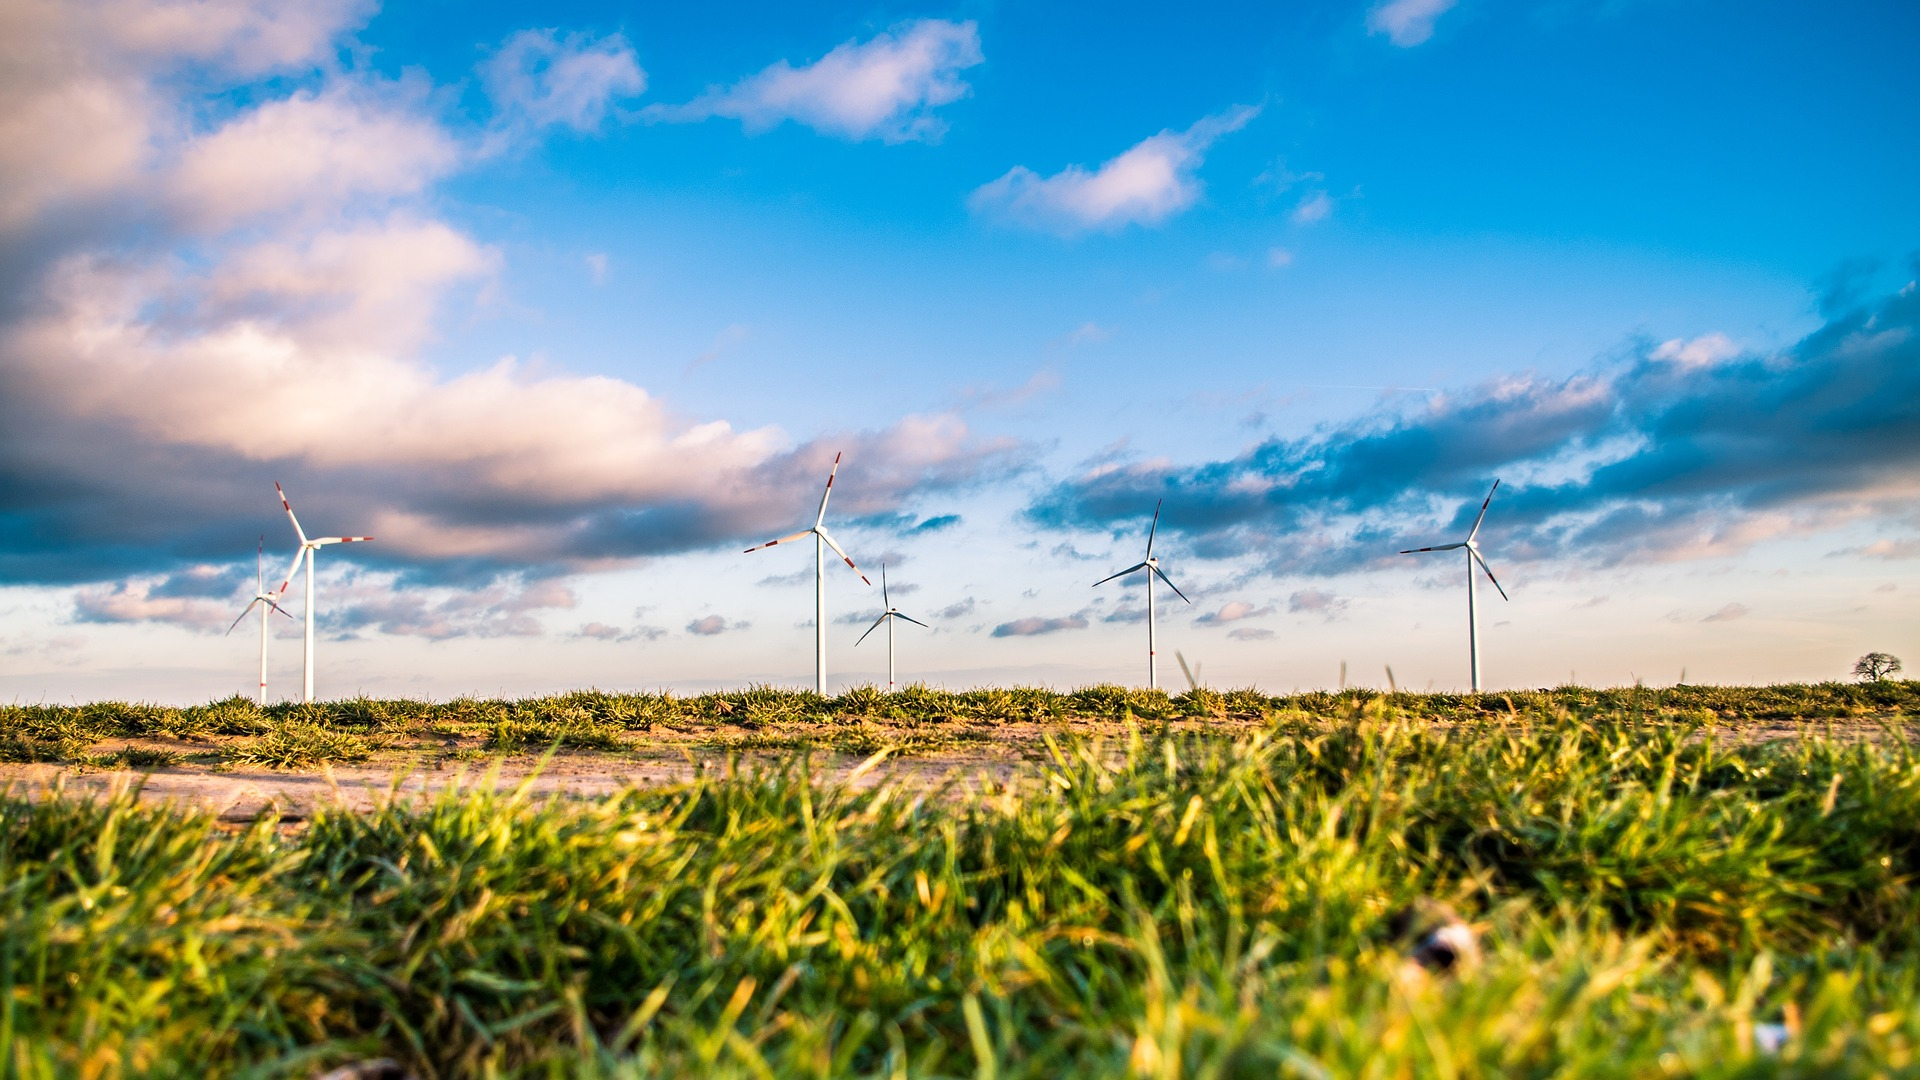 Wind farm surrounded by grass